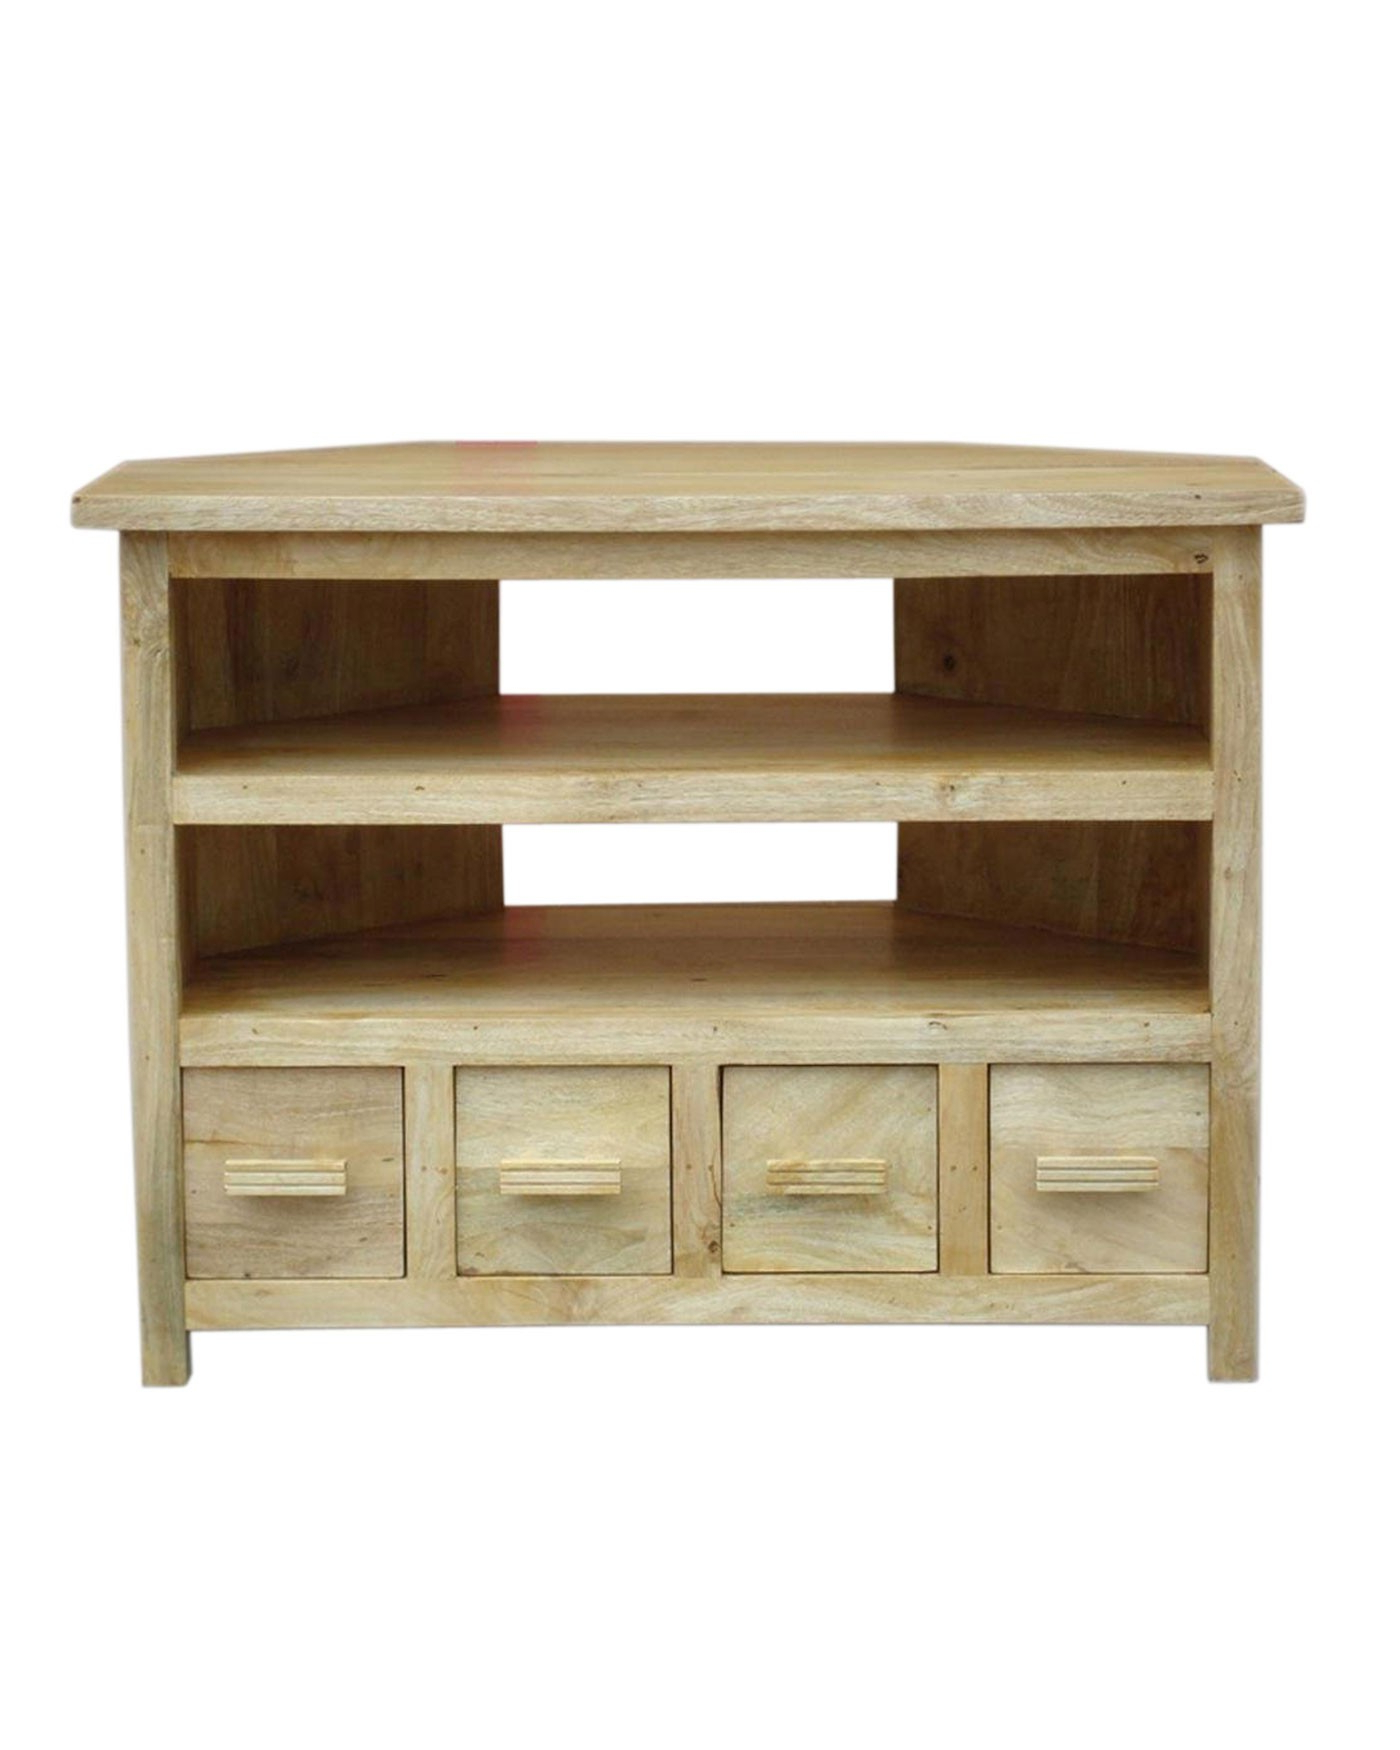 Widely Used Mangat Tall Corner Tv Unit Oak Shade – Homescapes In Tall Tv Cabinets Corner Unit (View 15 of 20)